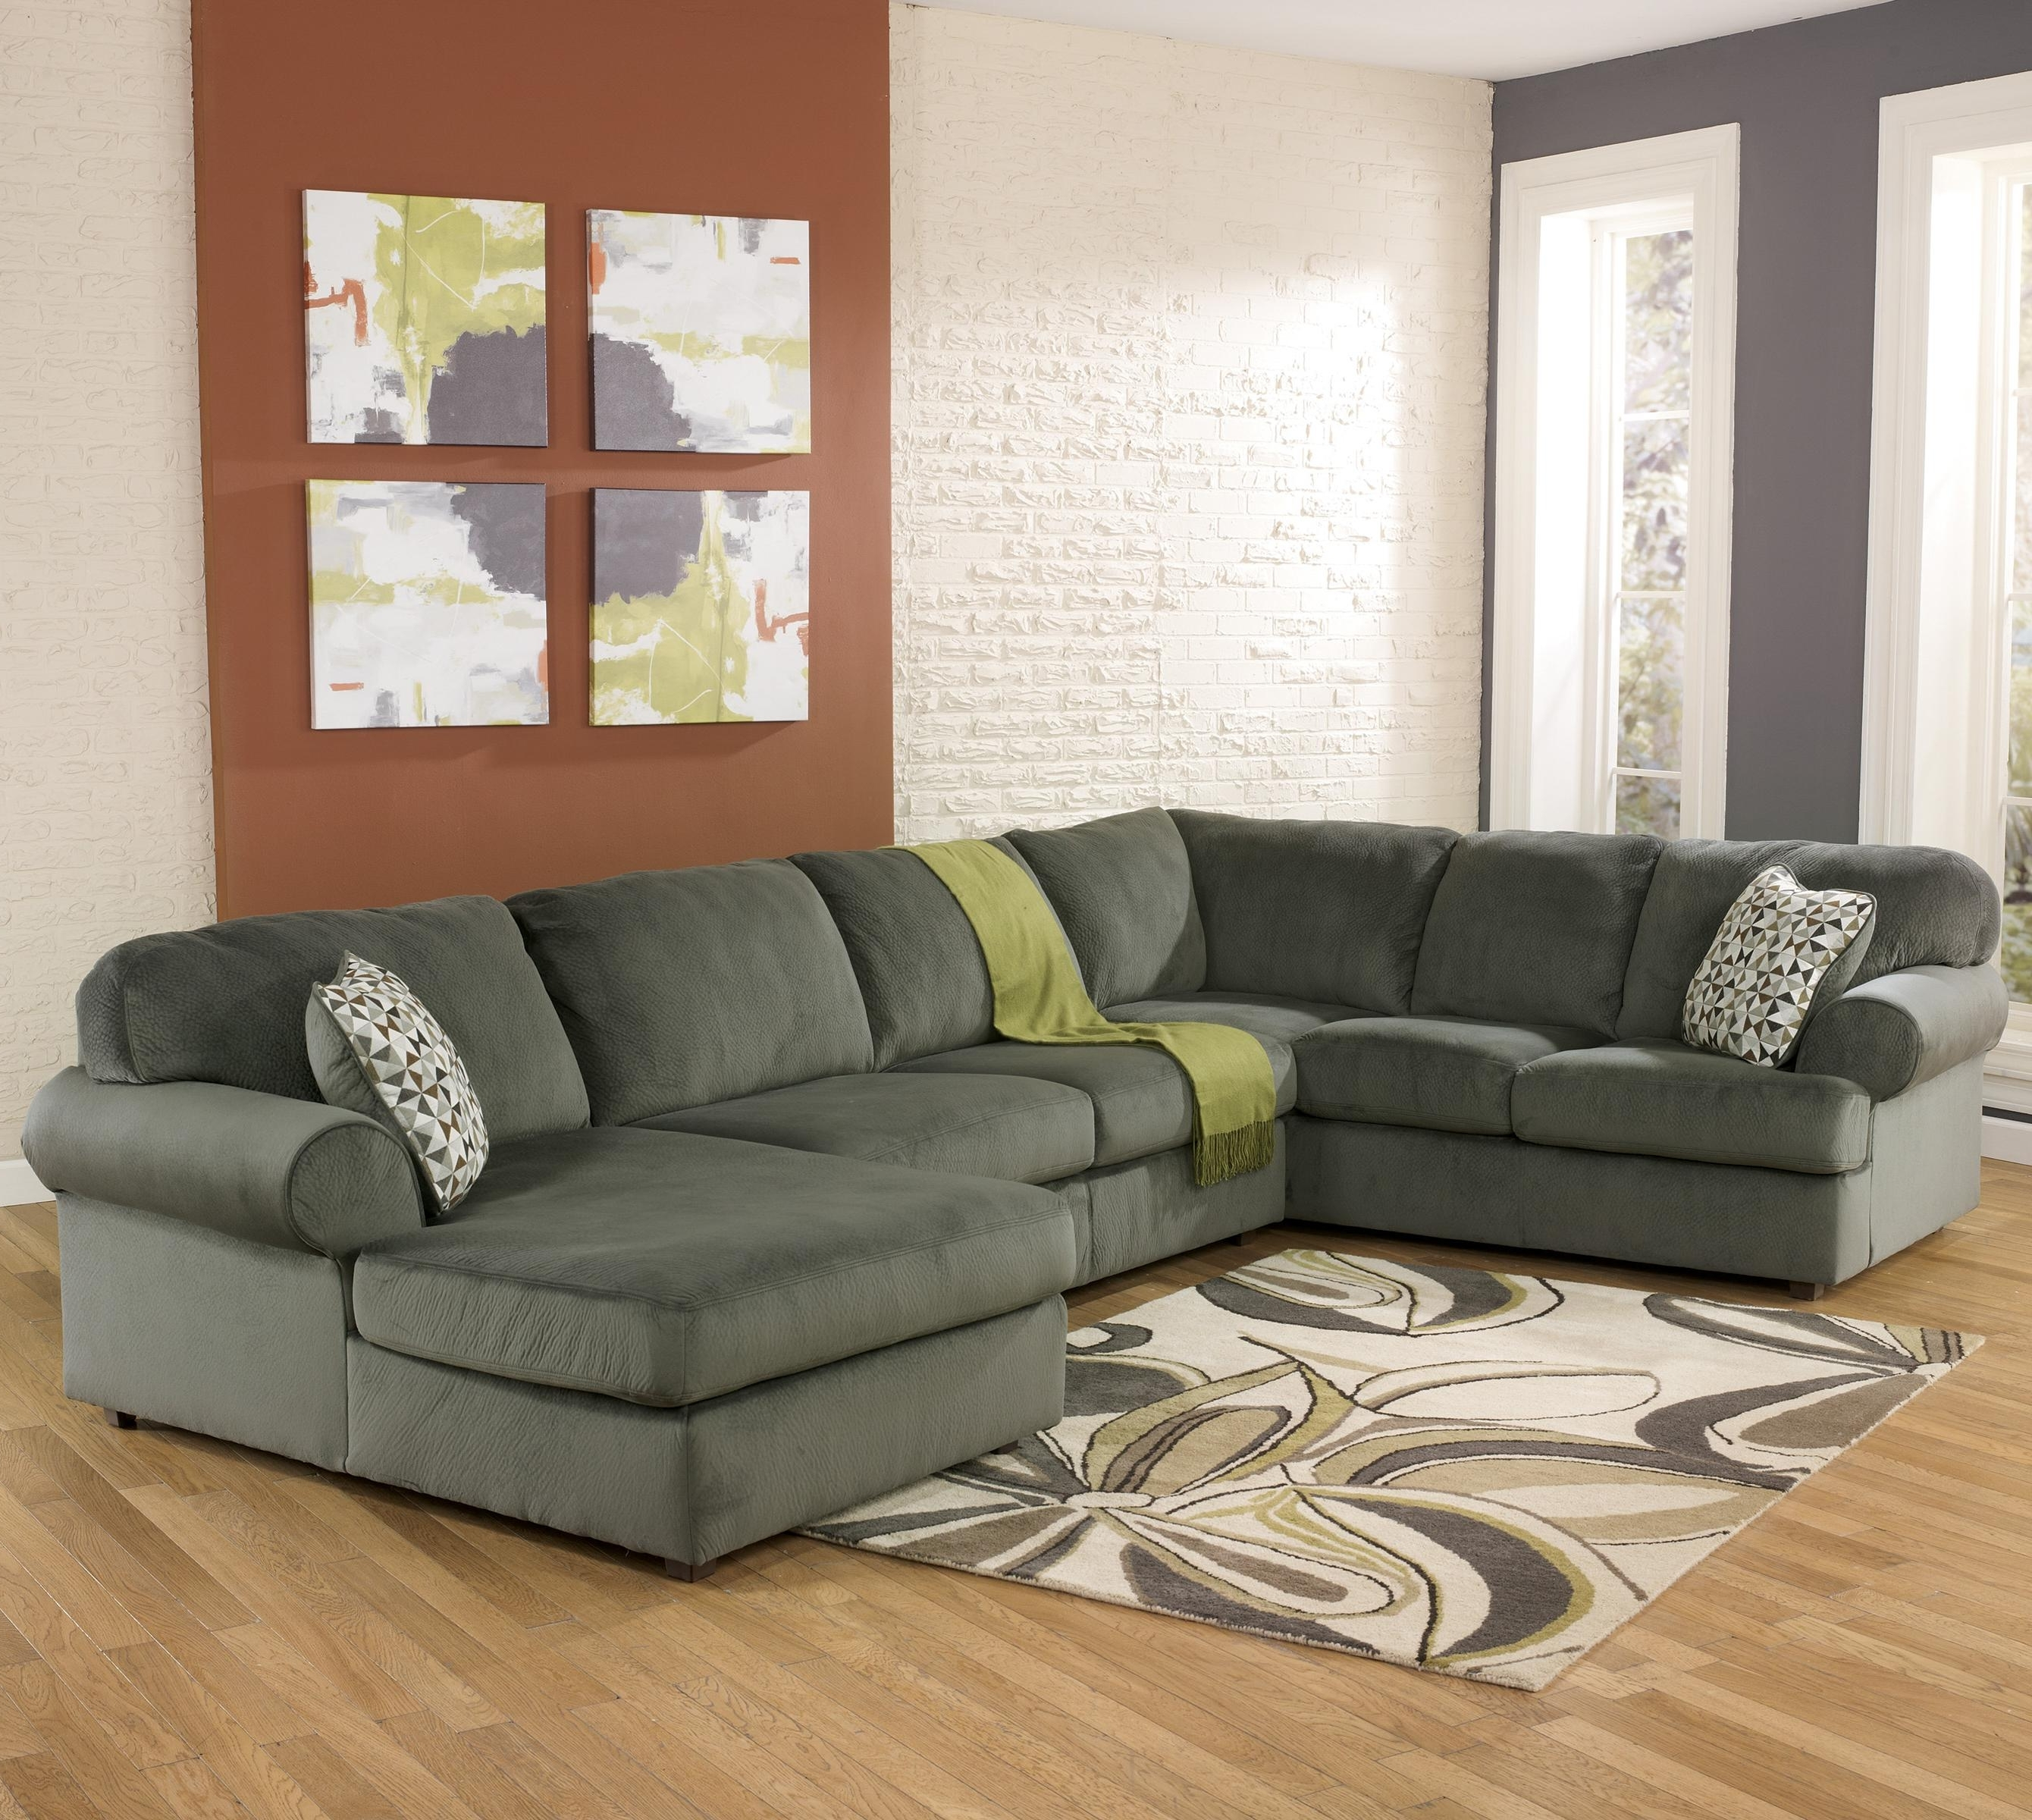 Casual Sectional Sofa With Right Chaisesignature Design Pertaining To Most Recent Lancaster Pa Sectional Sofas (View 2 of 15)